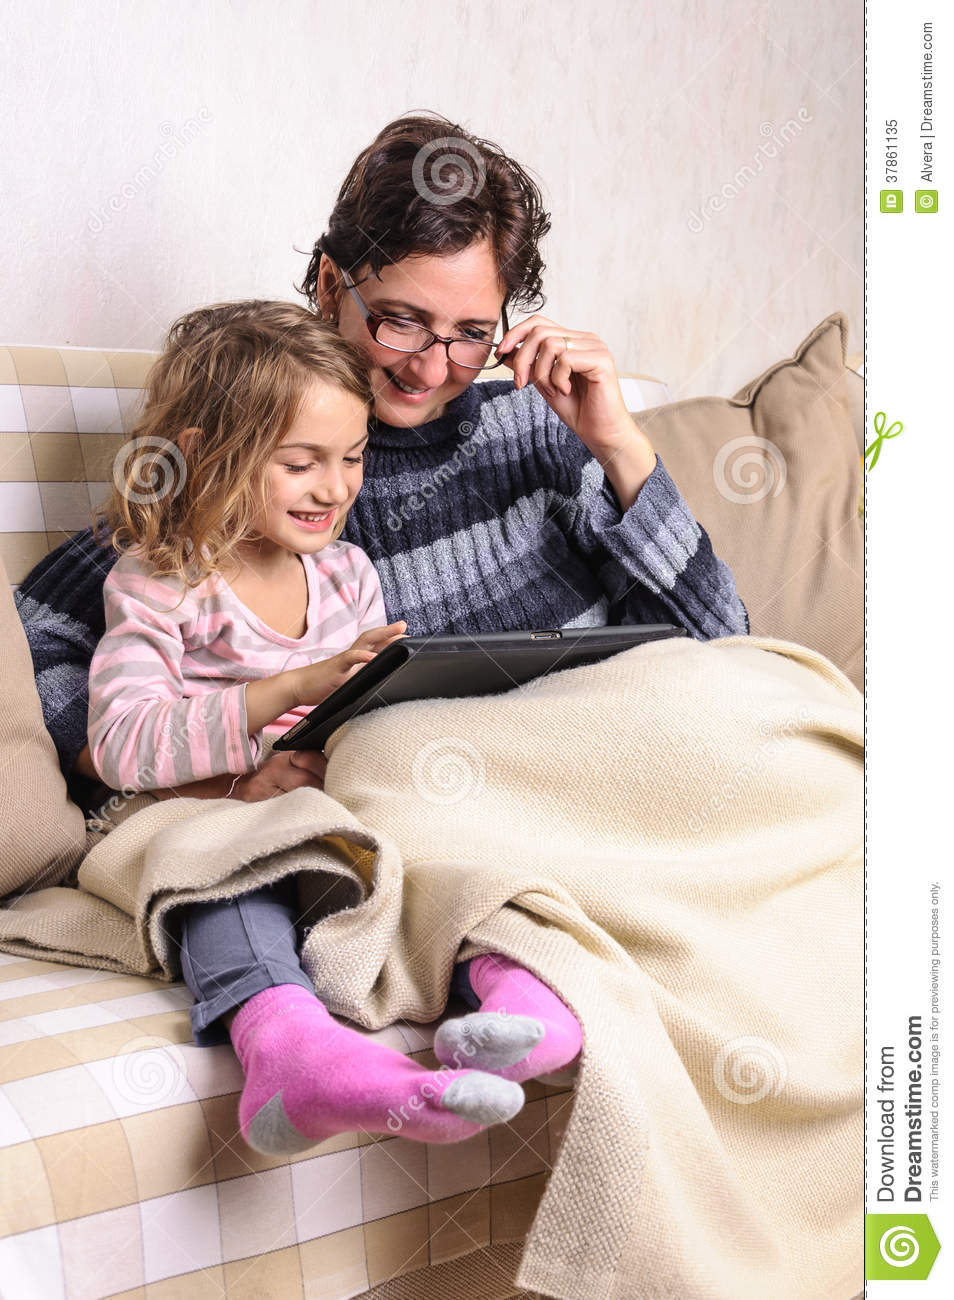 child and mother using tablet on sofa royalty free stock photo image 37861135. Black Bedroom Furniture Sets. Home Design Ideas